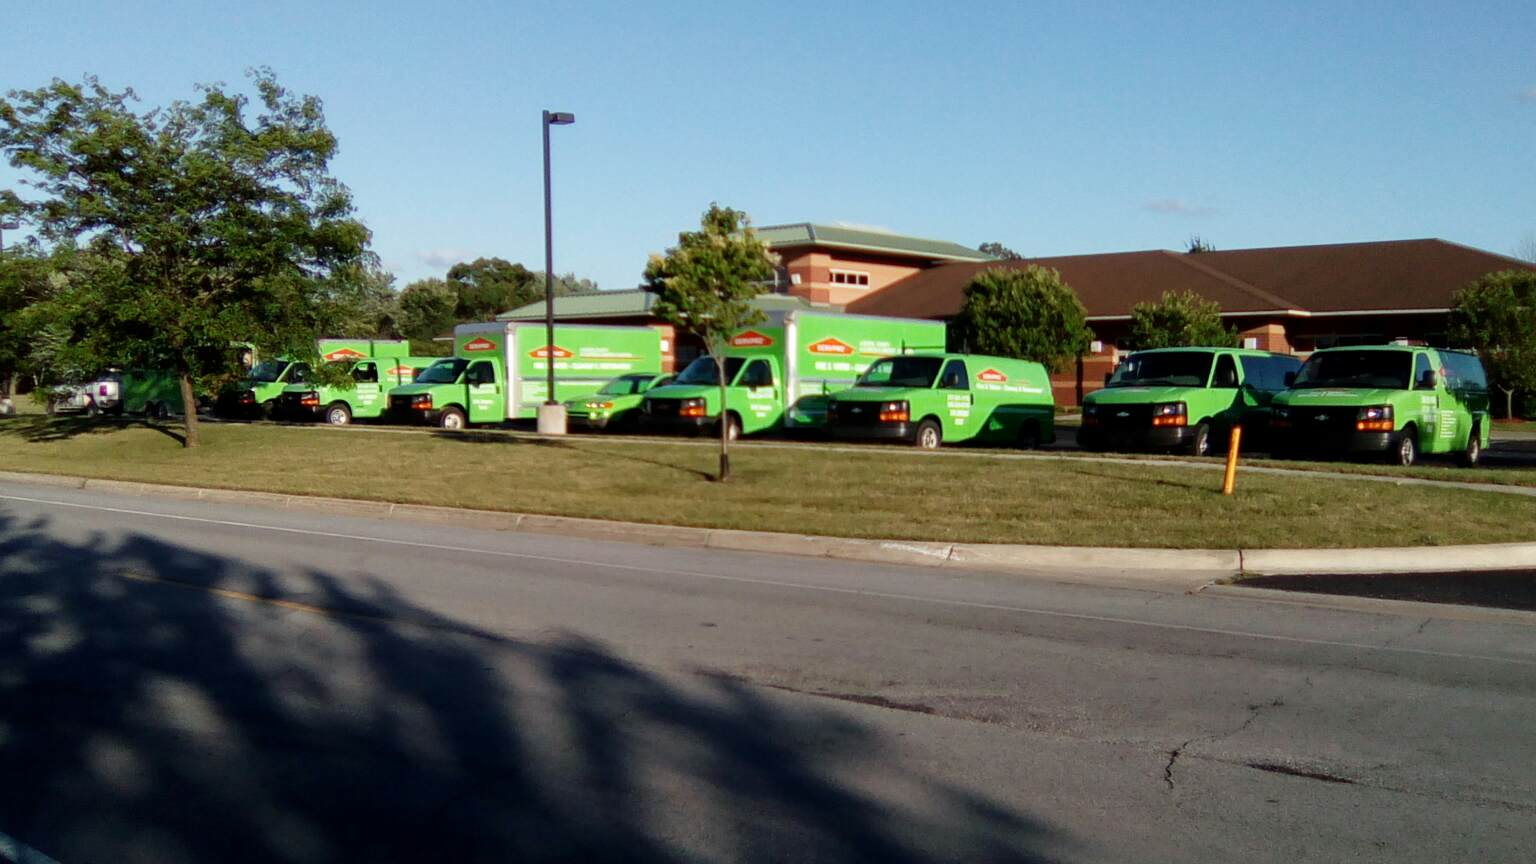 ServePro sent 7 vans for the demolition work at the Bellows Home